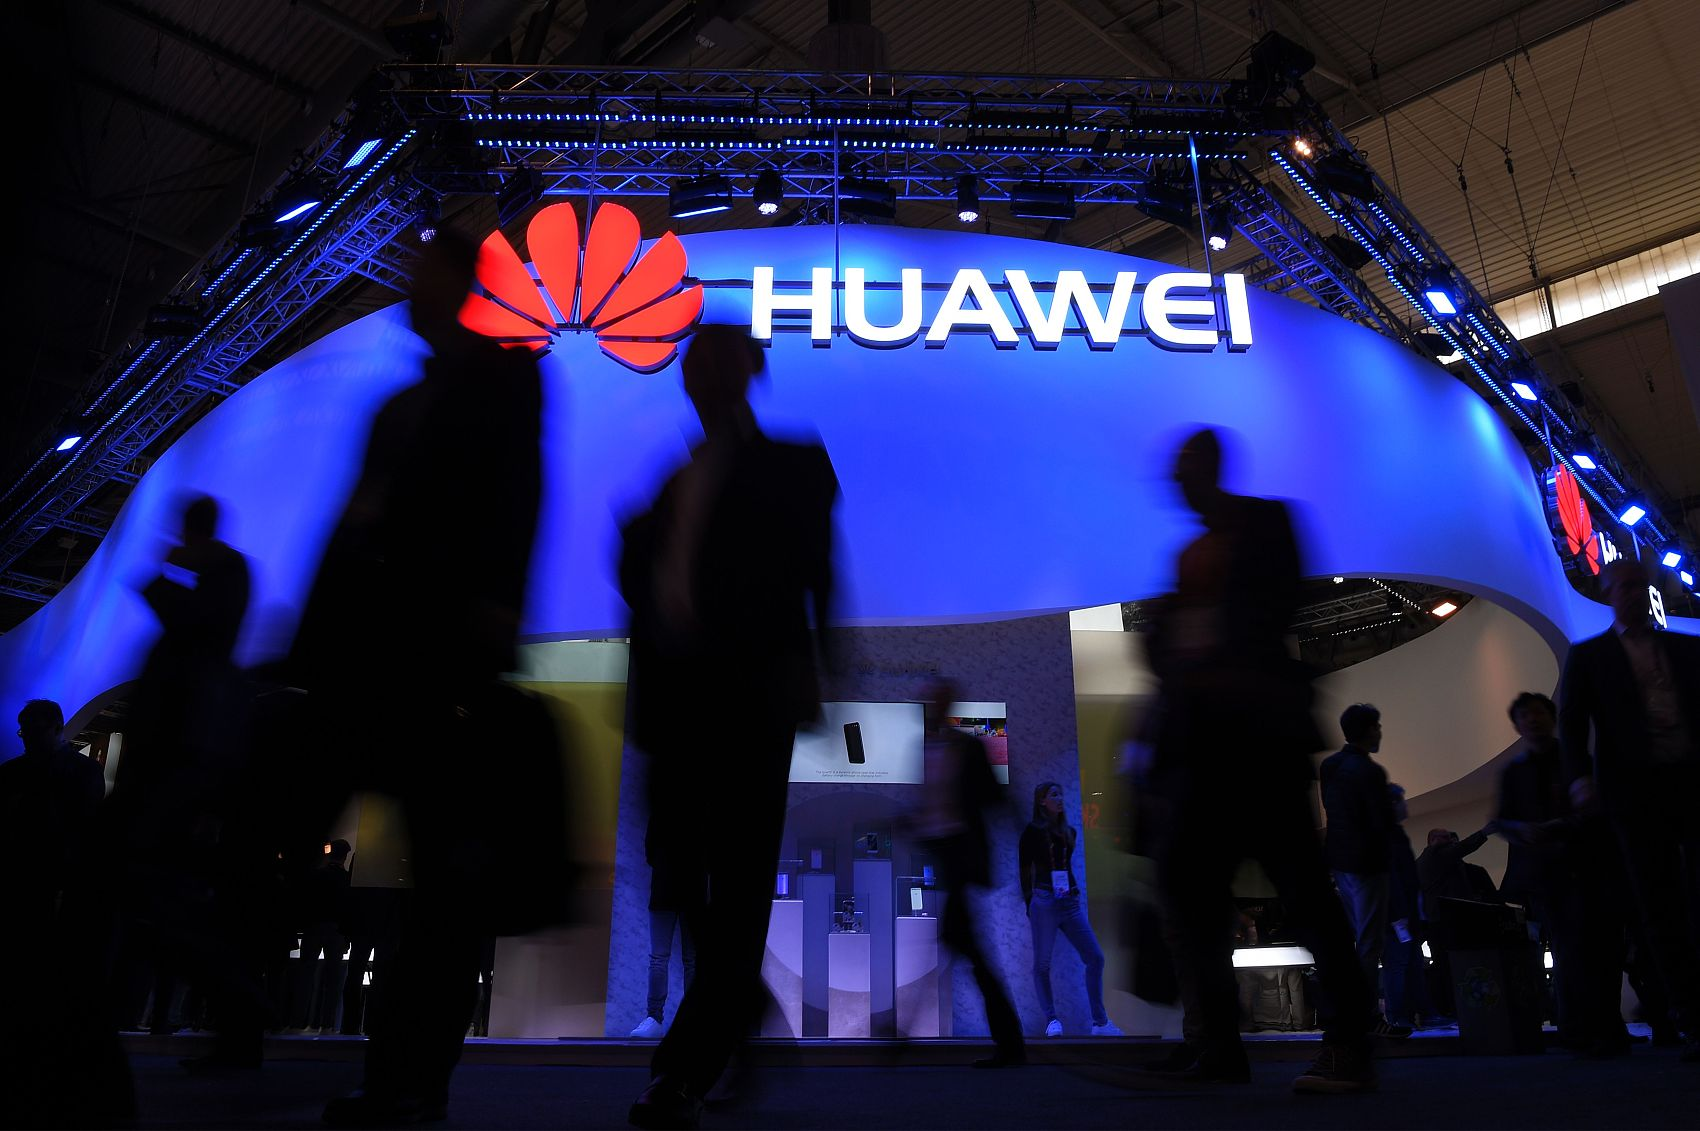 UAE property developer partners with Huawei to offer smart home solutions